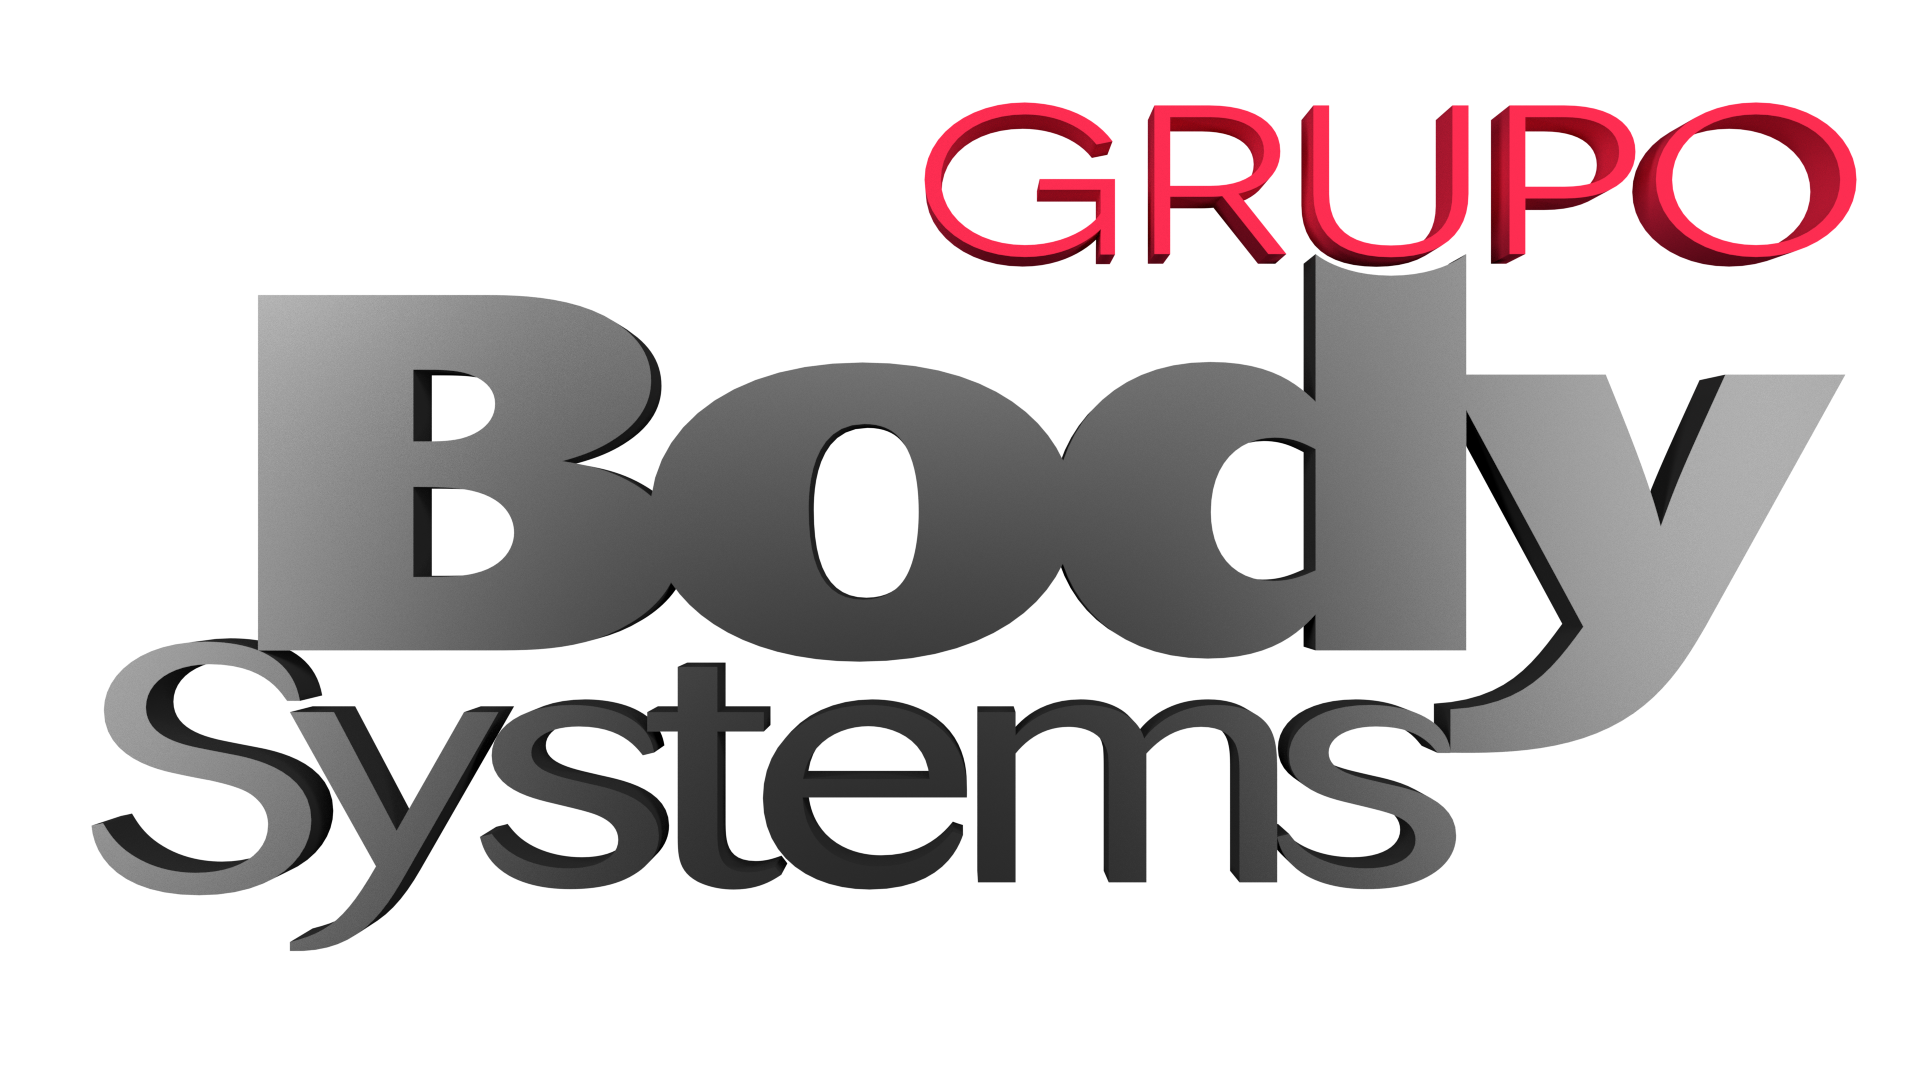 Grupo Body Systems logo